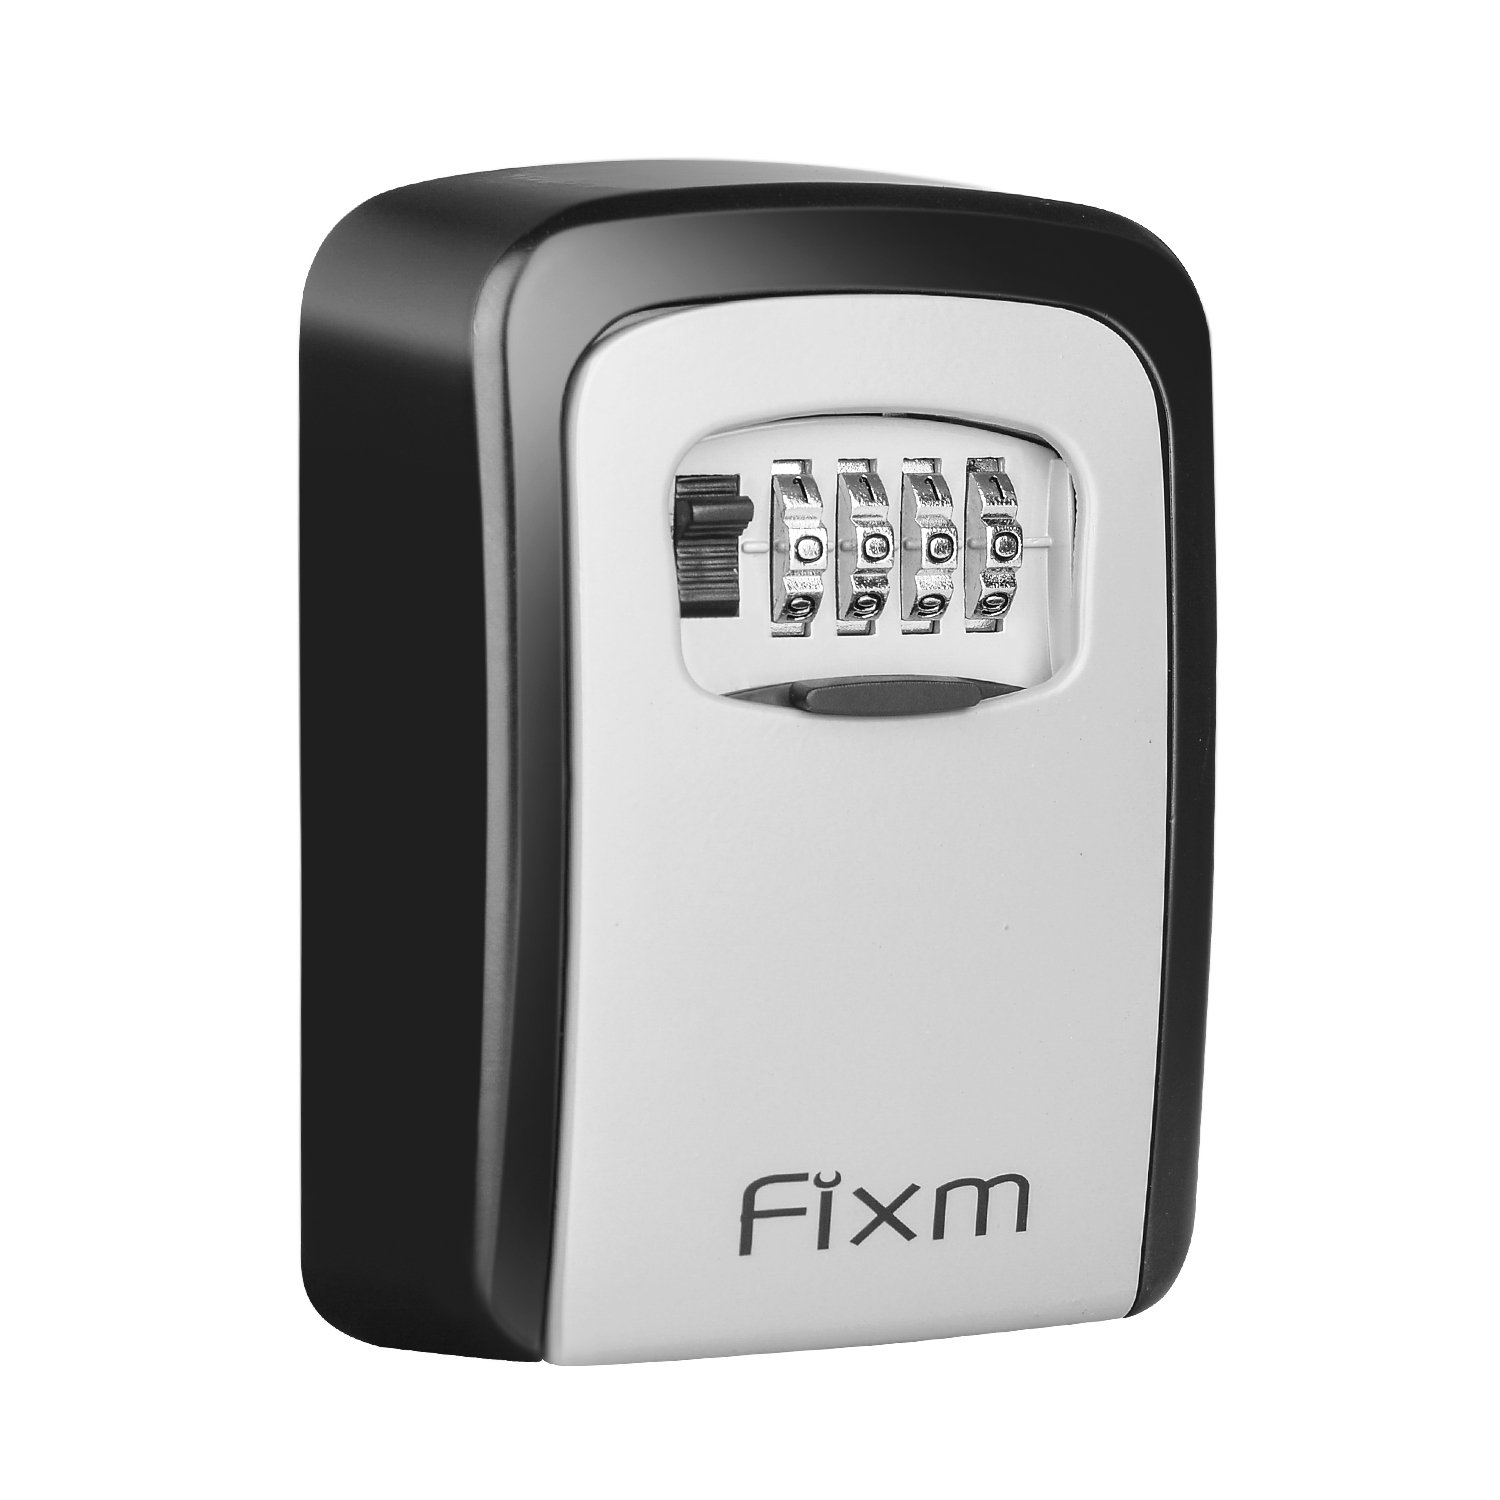 Fixm Key Lock Box,Wall Mounted 4-Digit Resettable Key Safe Storage Box Holds 5 Keys, Indoor/Outdoor